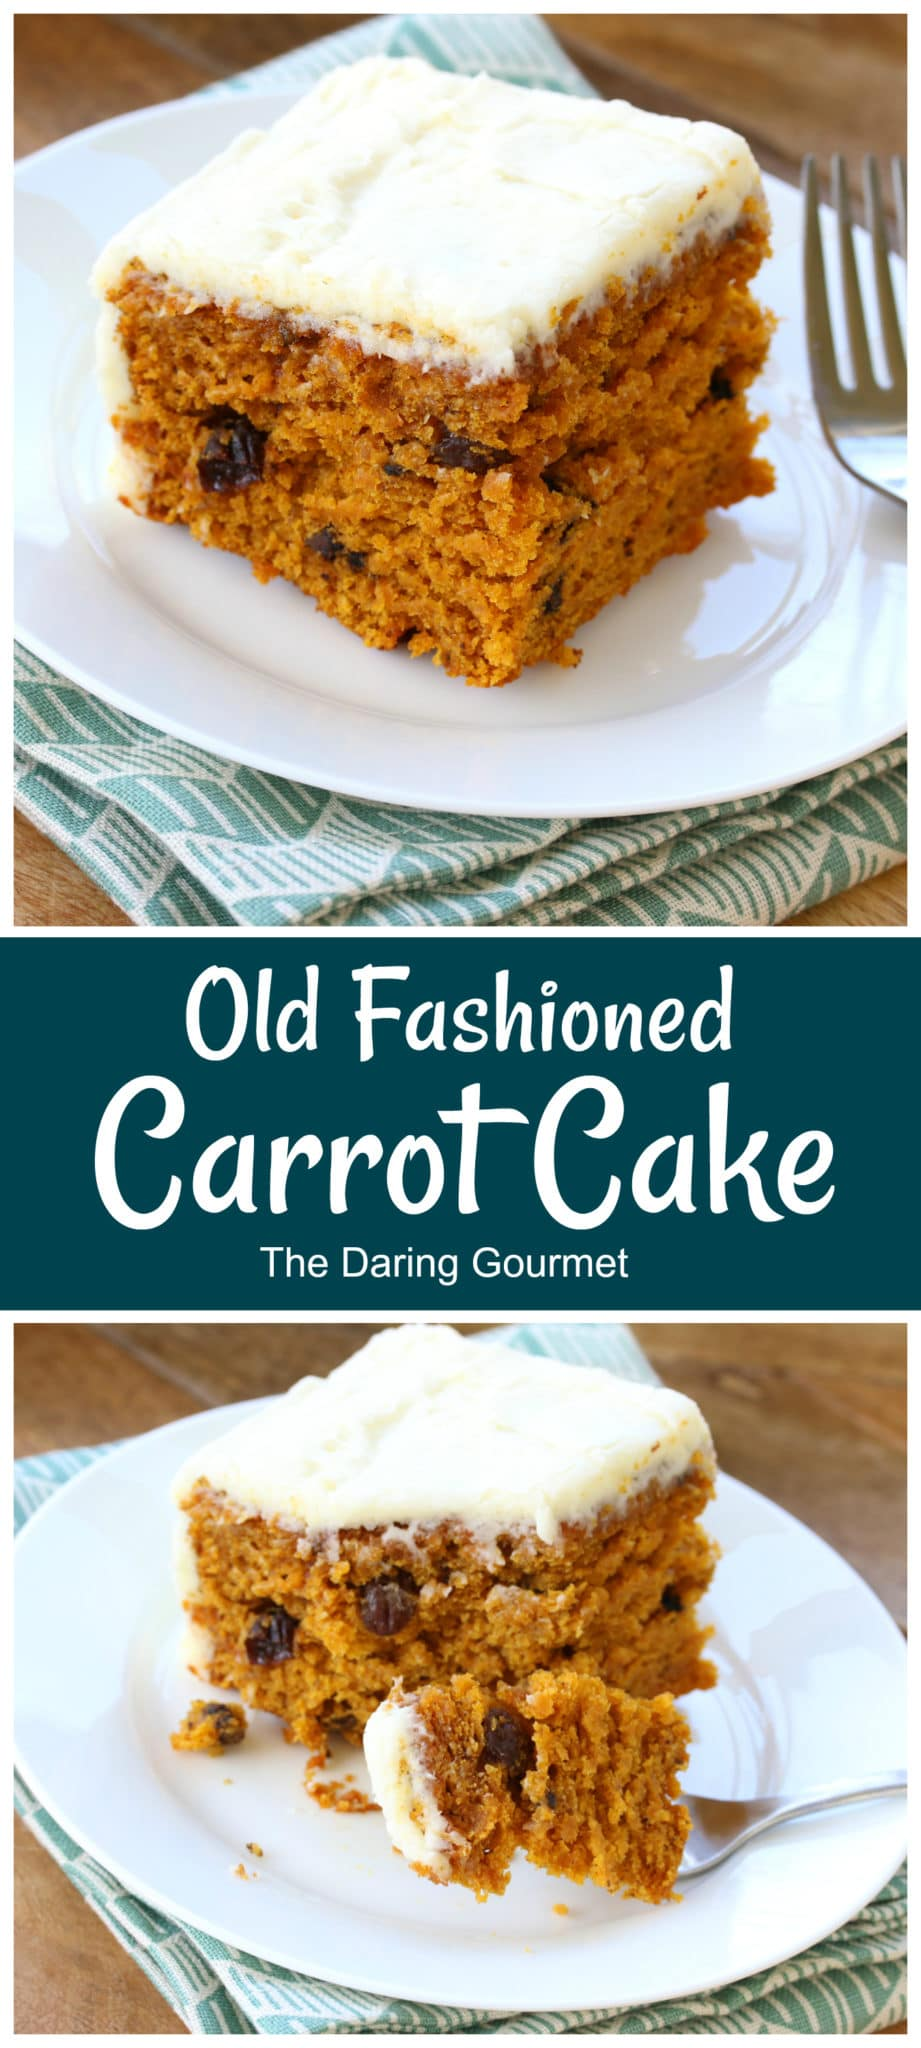 carrot cake recipe best old fashioned traditional easy cream cream frosting